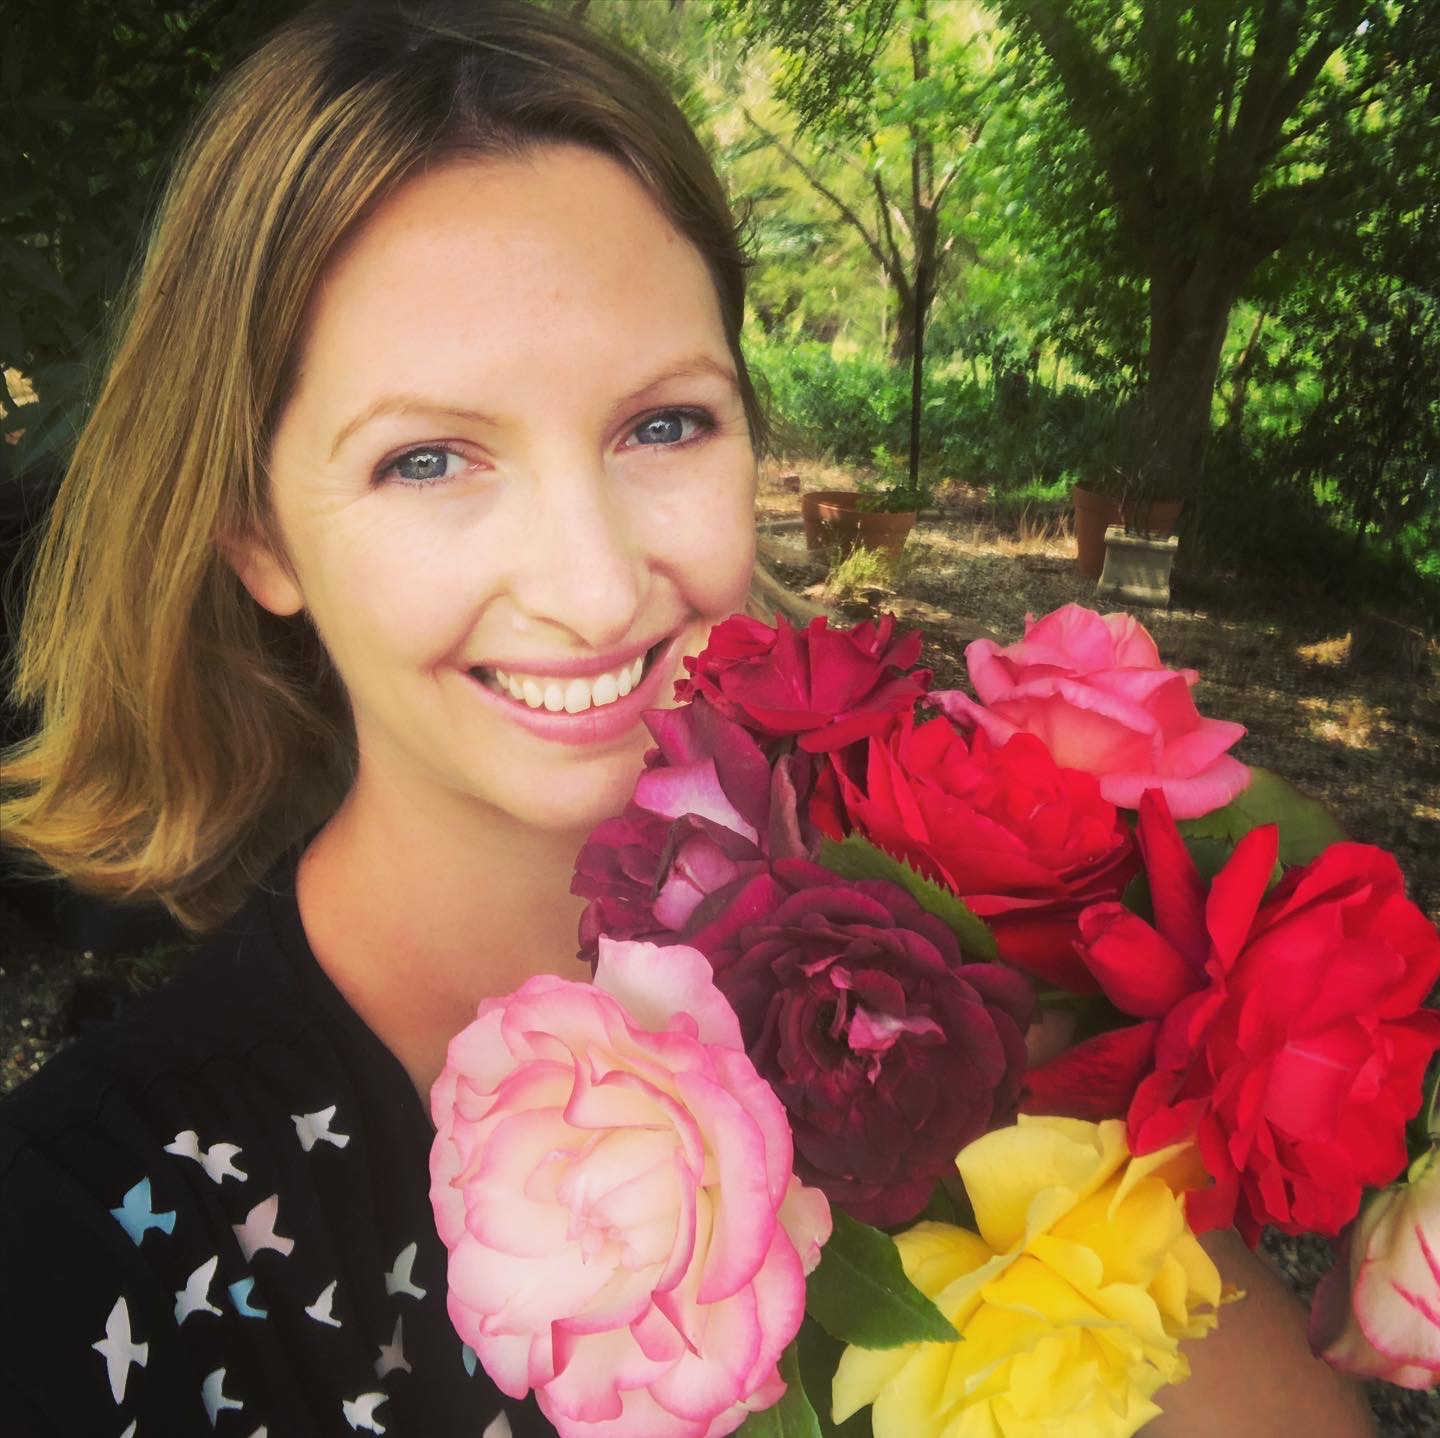 A photo of our site administrator. She is smiling and holding roses from her garden.